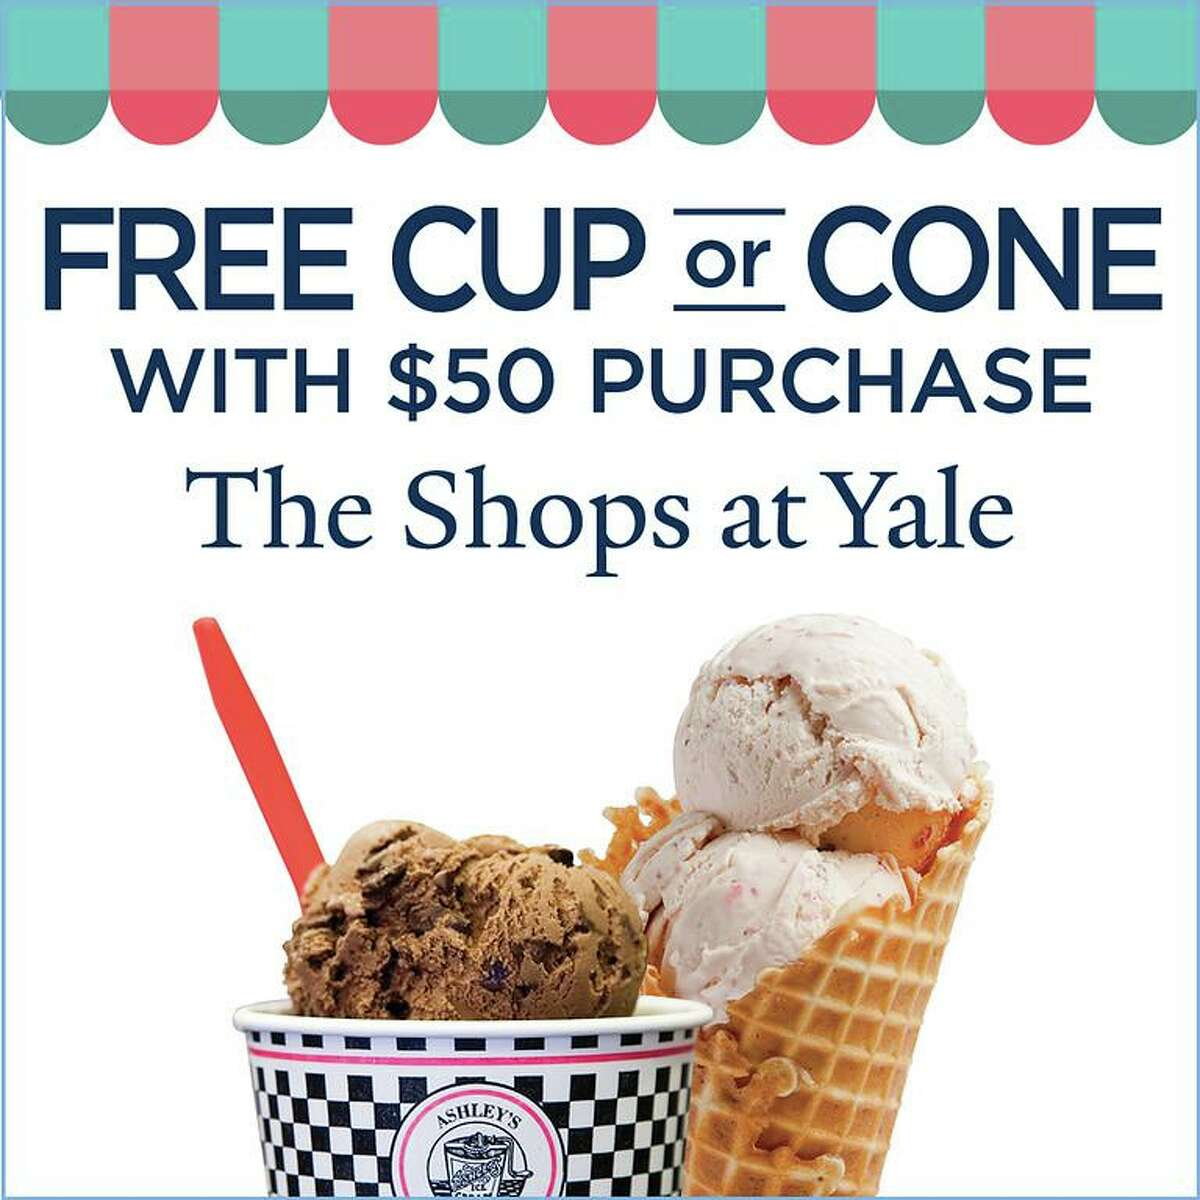 Customers can earn a free small cup or cone at Ashley's Ice Cream or Arethusa Farm Dairy with a same-day $50 purchase at one of the Shops at Yale in August.